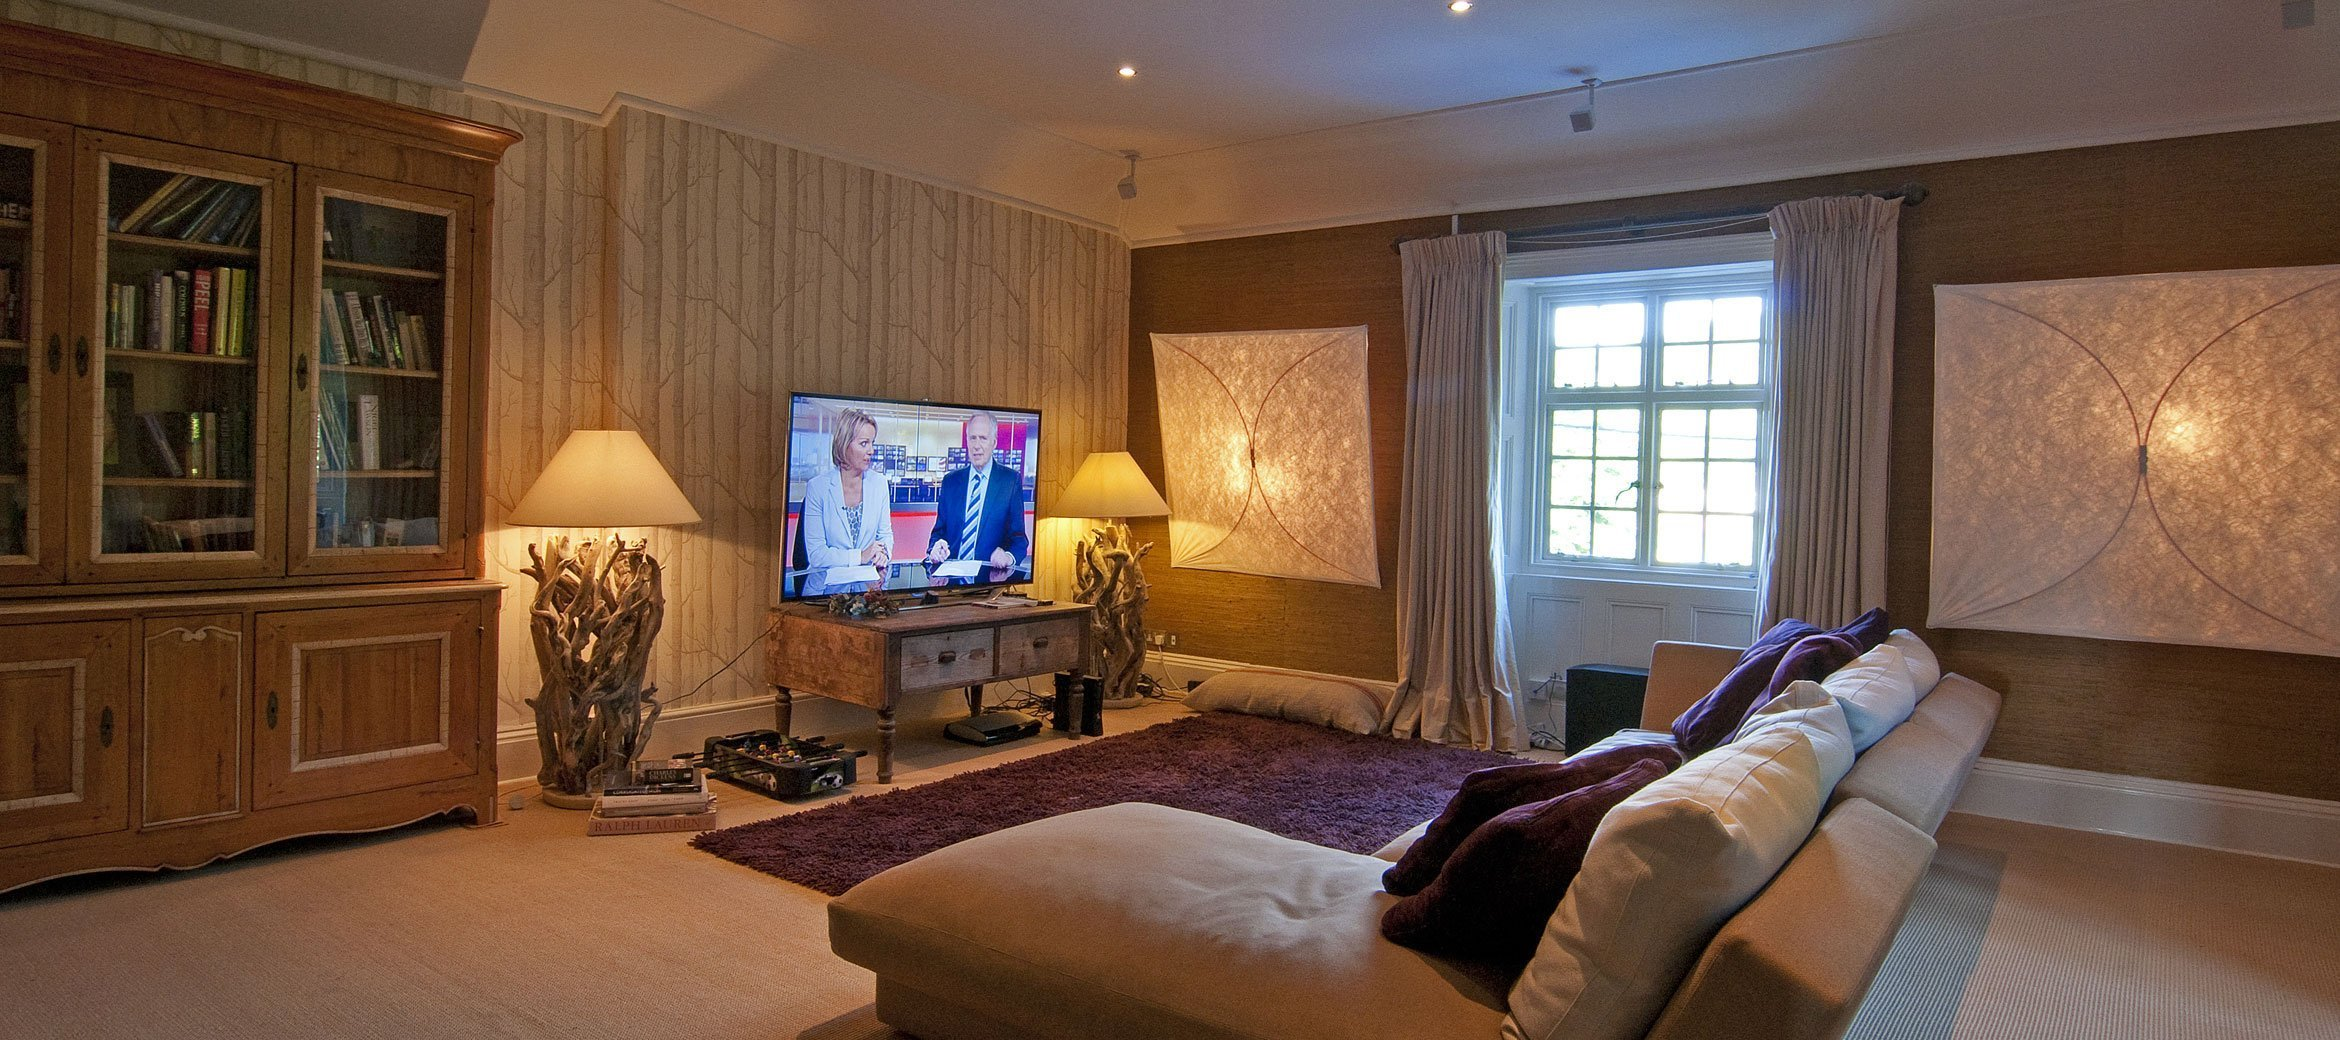 sheepscombe-house-cinema-room